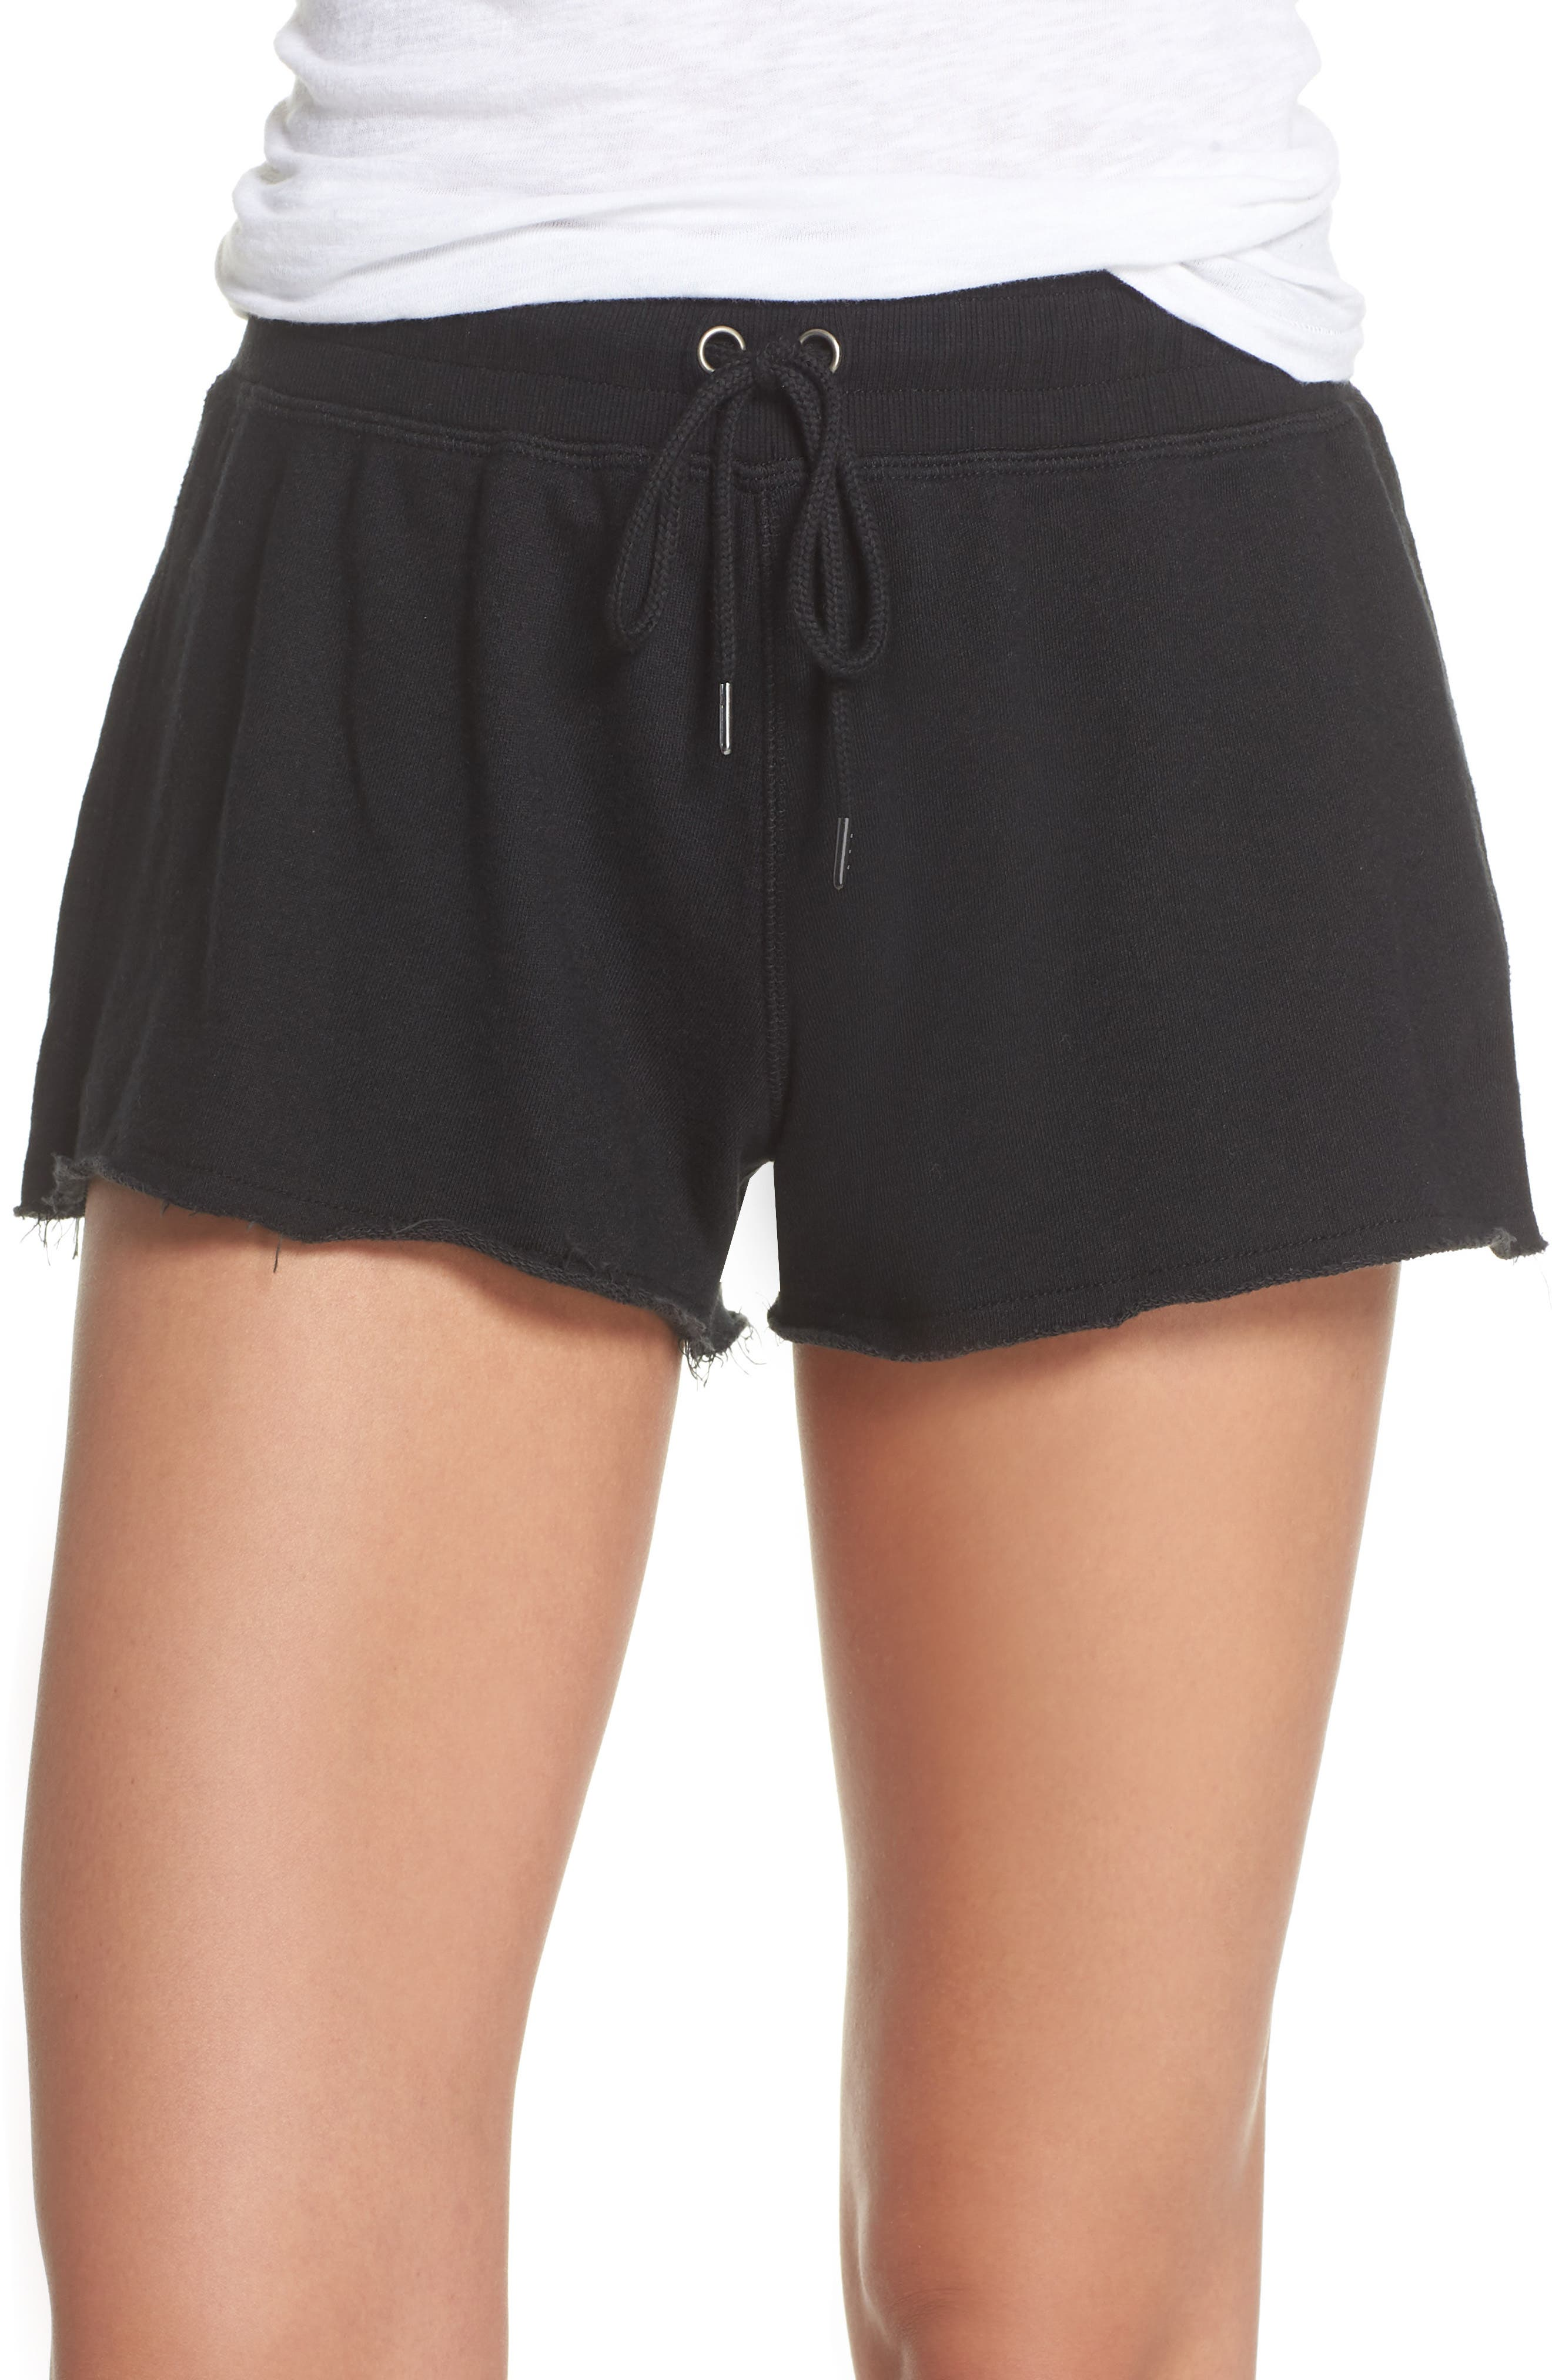 French Terry Sleep Shorts,                         Main,                         color, FADED BLACK